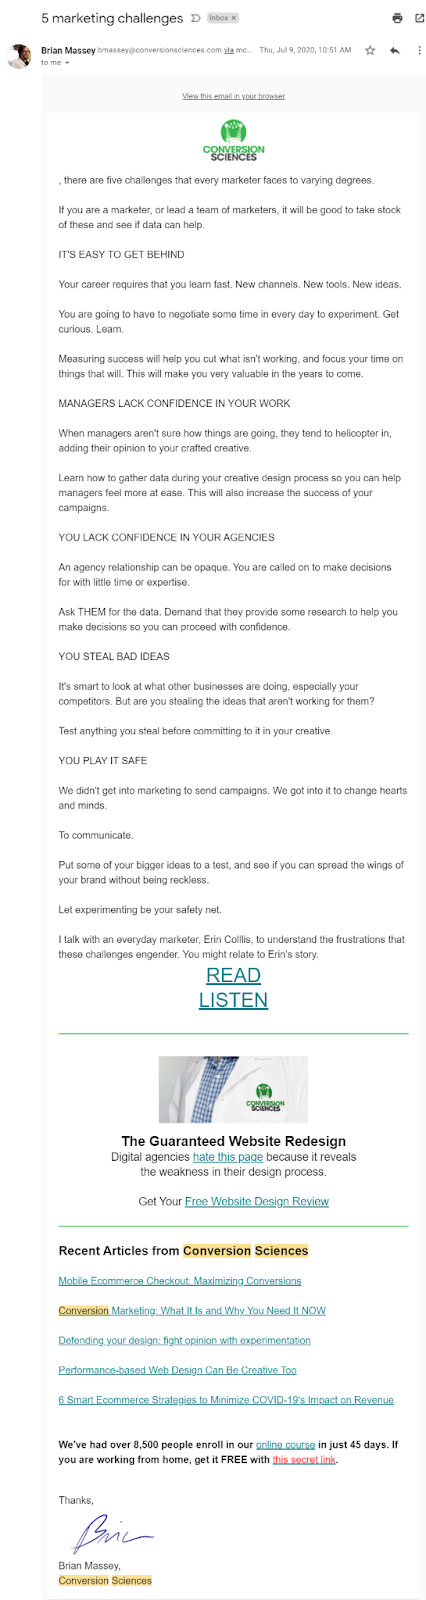 Screenshot of a content update email from Conversion Sciences